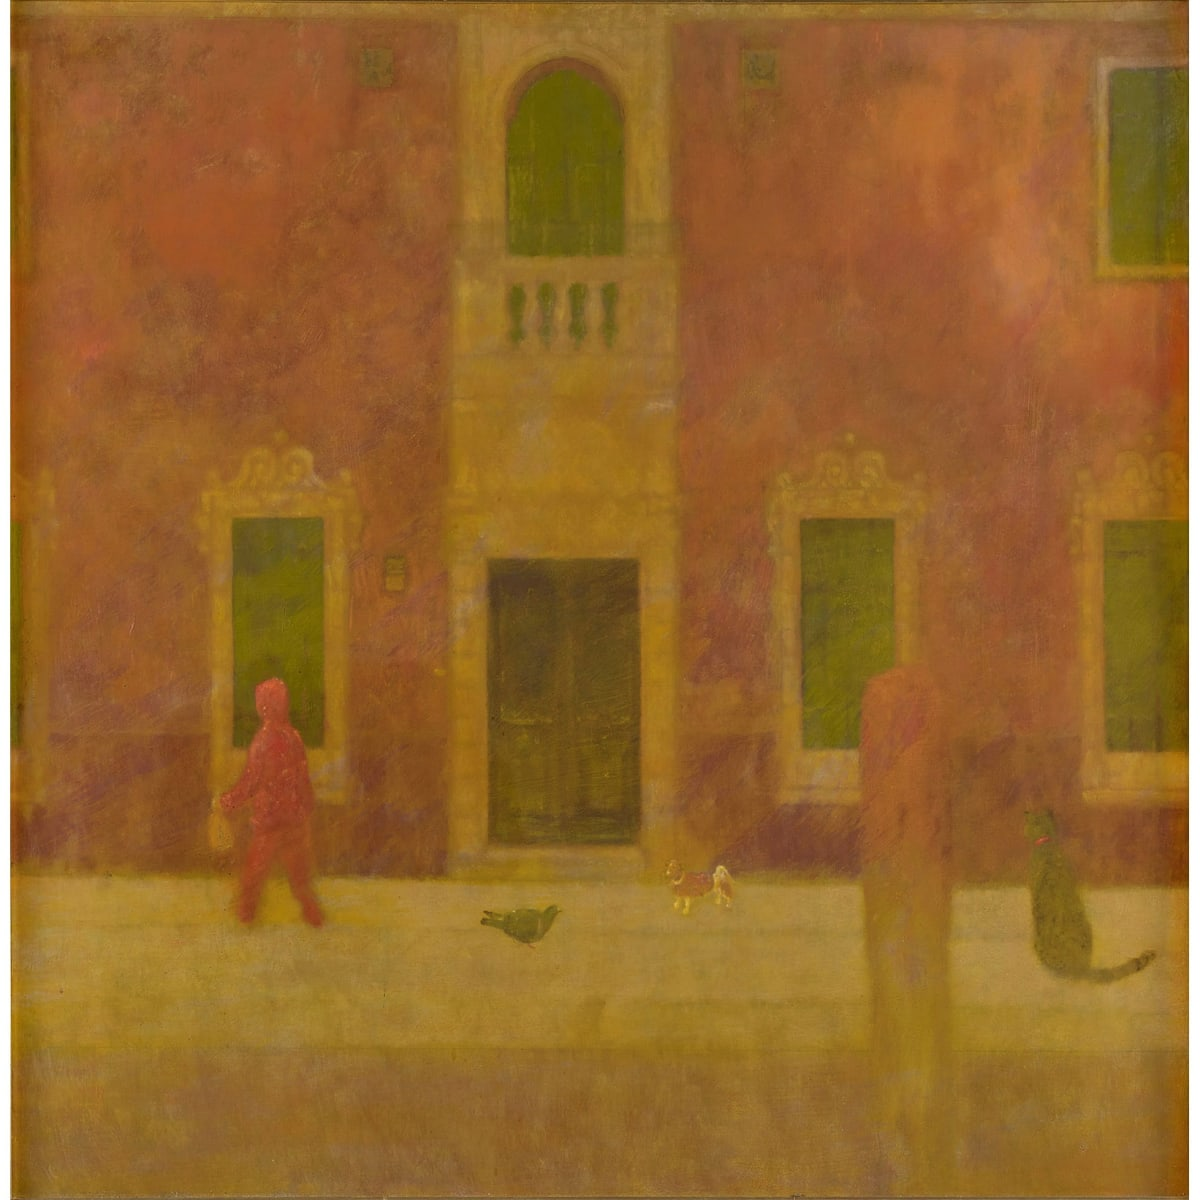 John Halliday The Red Jogger, Burano, c2000 oil on canvas laid on board 40 x 40 inches